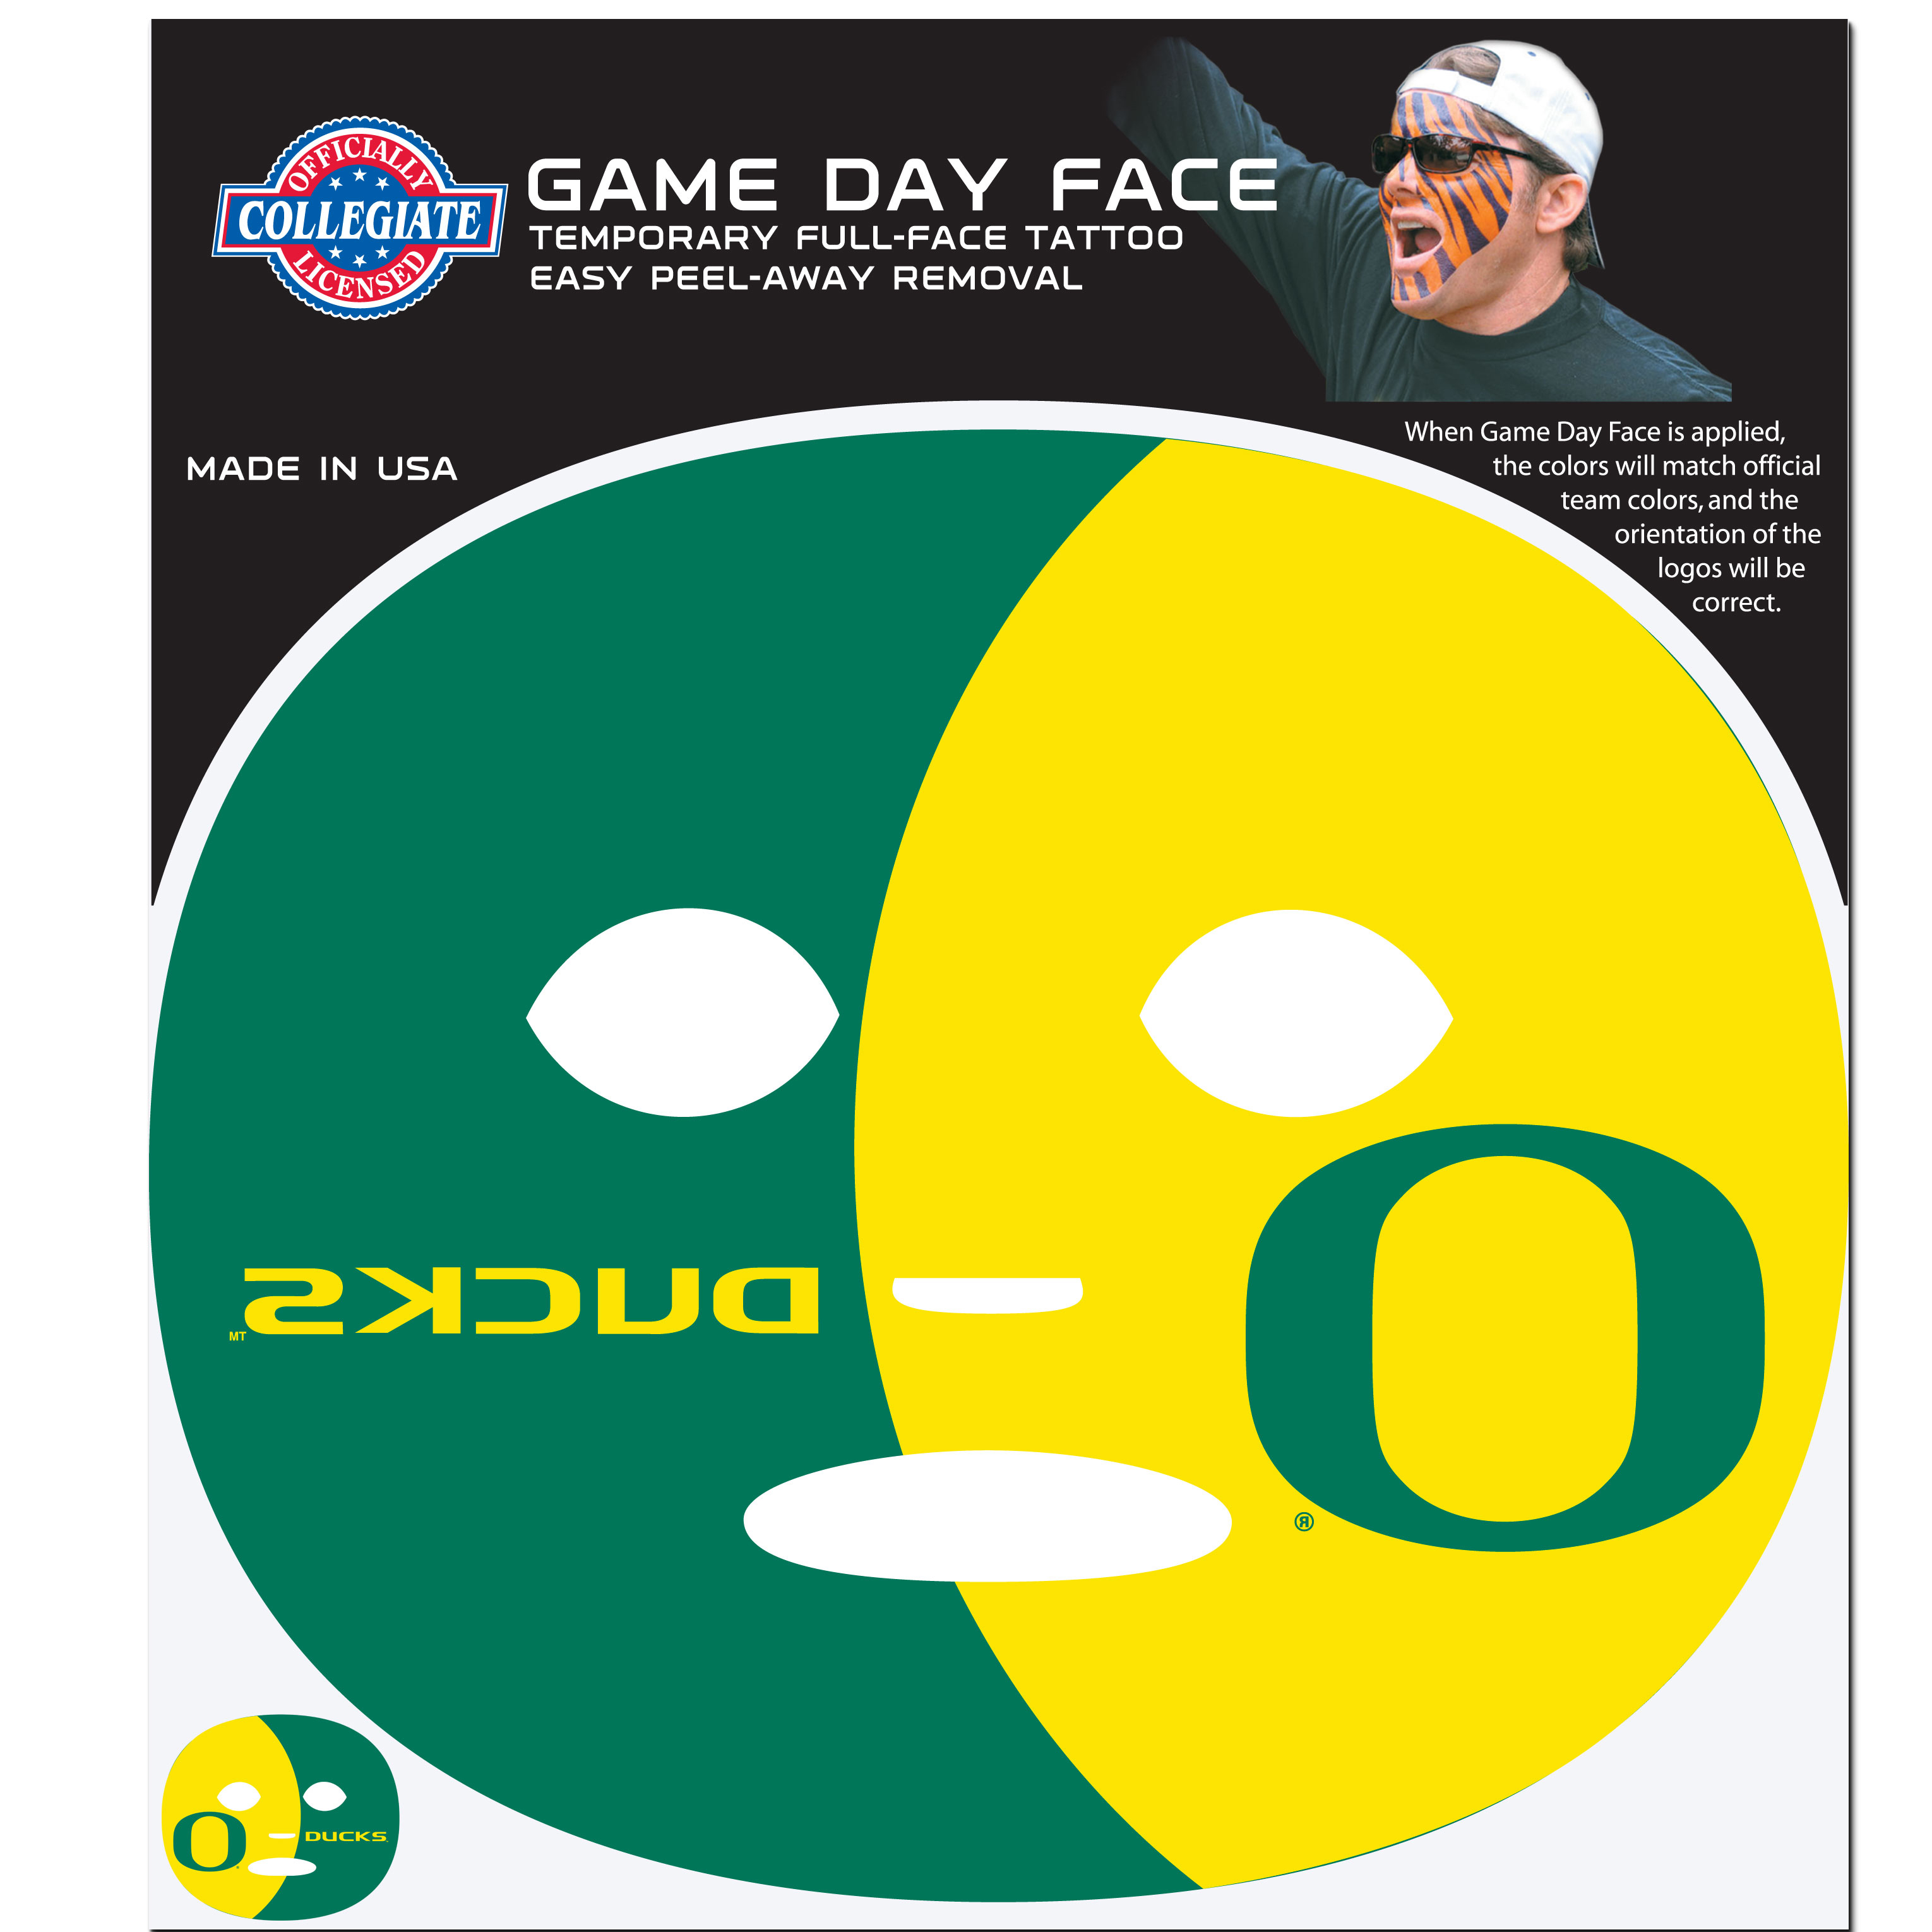 Oregon Ducks Set of 4 Game Day Faces - No better way to show your team pride than by painting your face. Siskiyou's Game Day Face Temporary Tattoo isn't your typical face paint. It is a water based application that doesn't smudge, smear or sweat off while you're wearing it and easily peels off after you're done celebrating your team's big Win! The temporary tattoo is large enough to trim down to fit your face. Our Game Day Face Temporary Tattoo's are fun for fans of all ages. You may have seen our product before, these are the same Temporary Face Tattoos as pitched on ABC's Shark Tank.